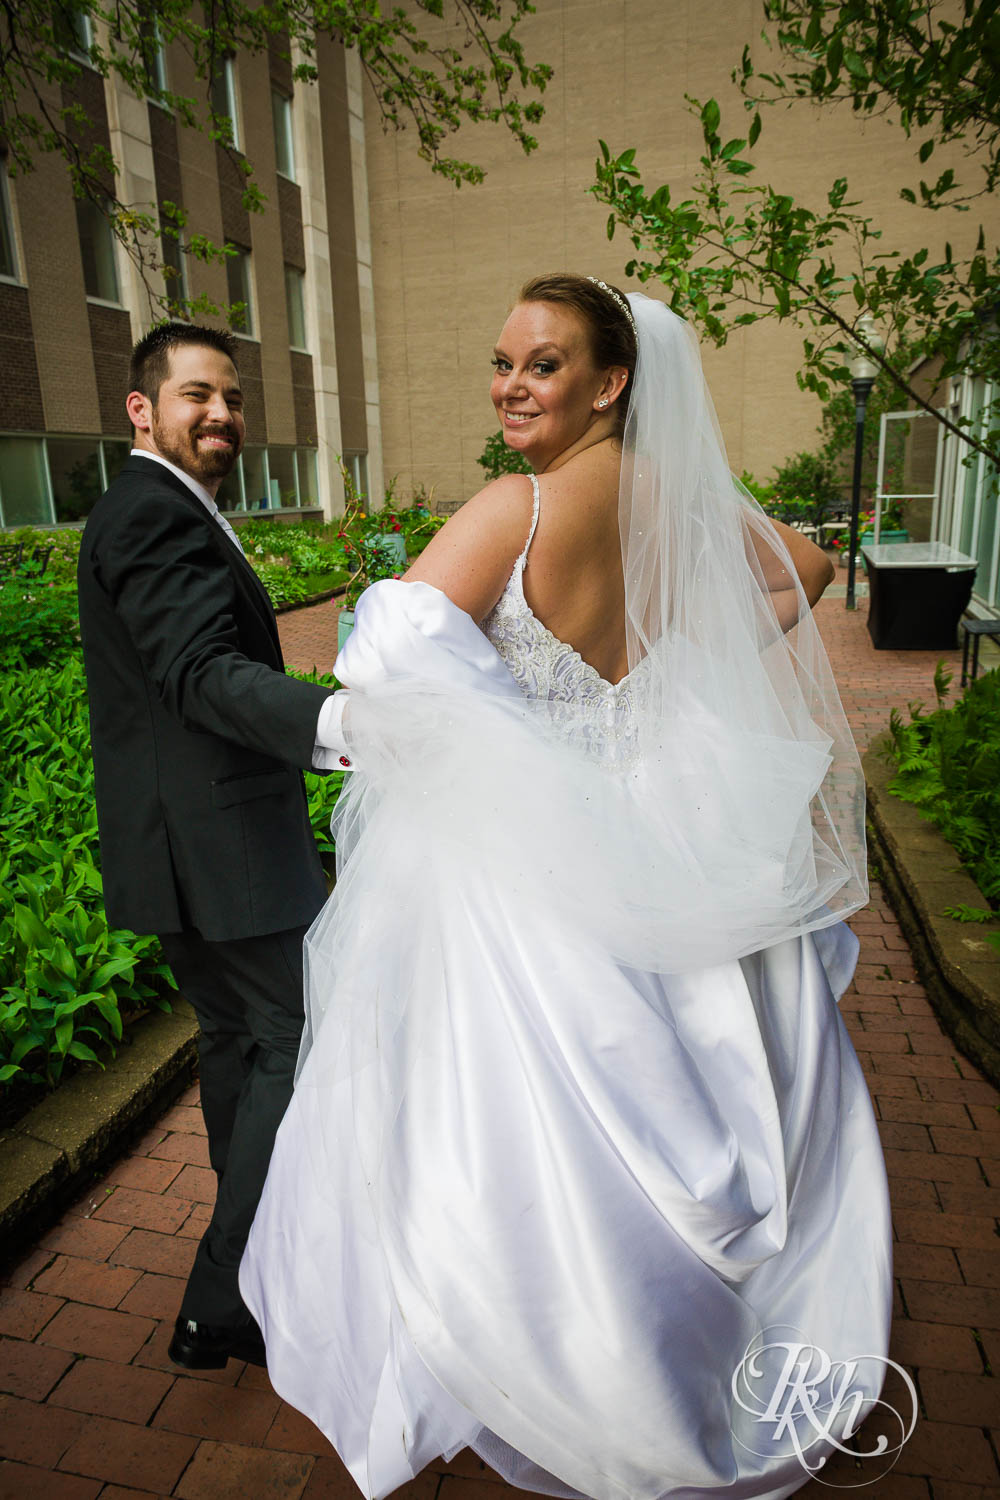 Kayla & Travis - Minnesota Wedding Photography - Crowne Plaza Minneapolis - RKH Images - Blog  (40 of 61).jpg